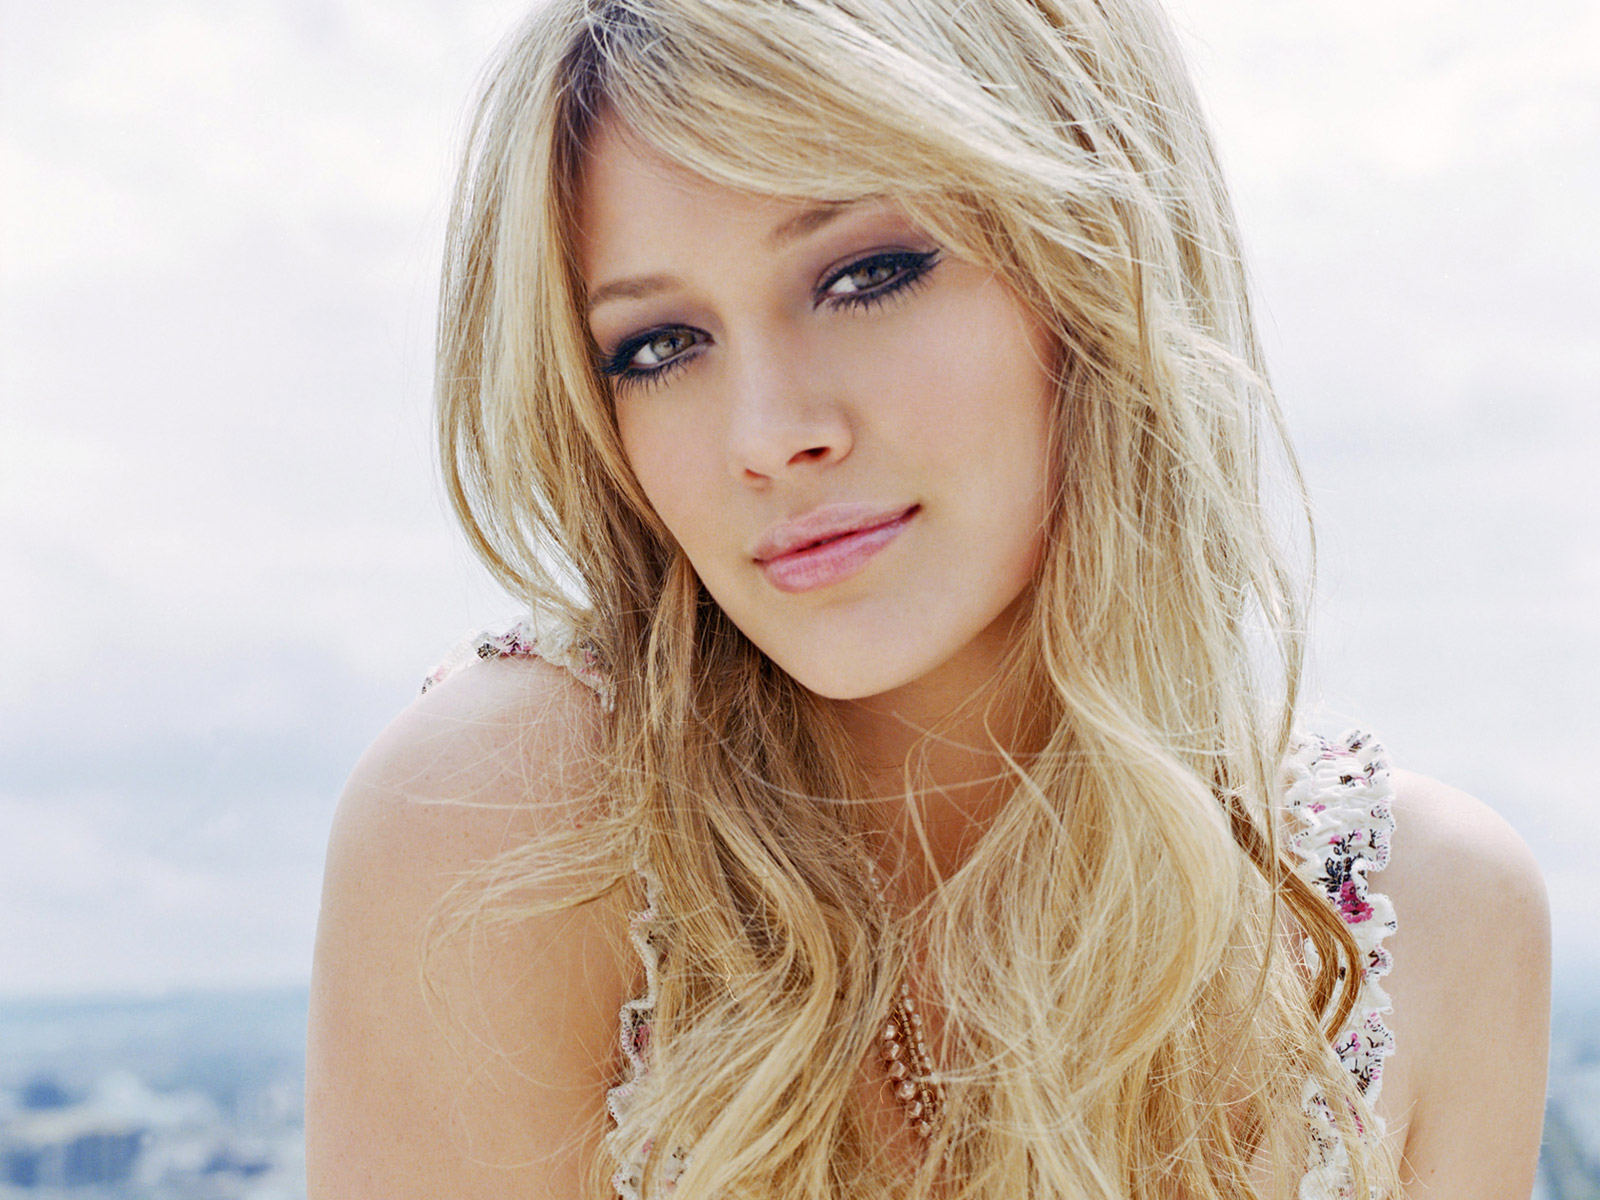 http://4.bp.blogspot.com/-c8XOARsIijc/TyQ4W_x-NoI/AAAAAAAACE4/3neN5S6u-So/s1600/Hilary-Duff-pictures-desktop-Wallpapers-HD-psupero-images-14.jpg